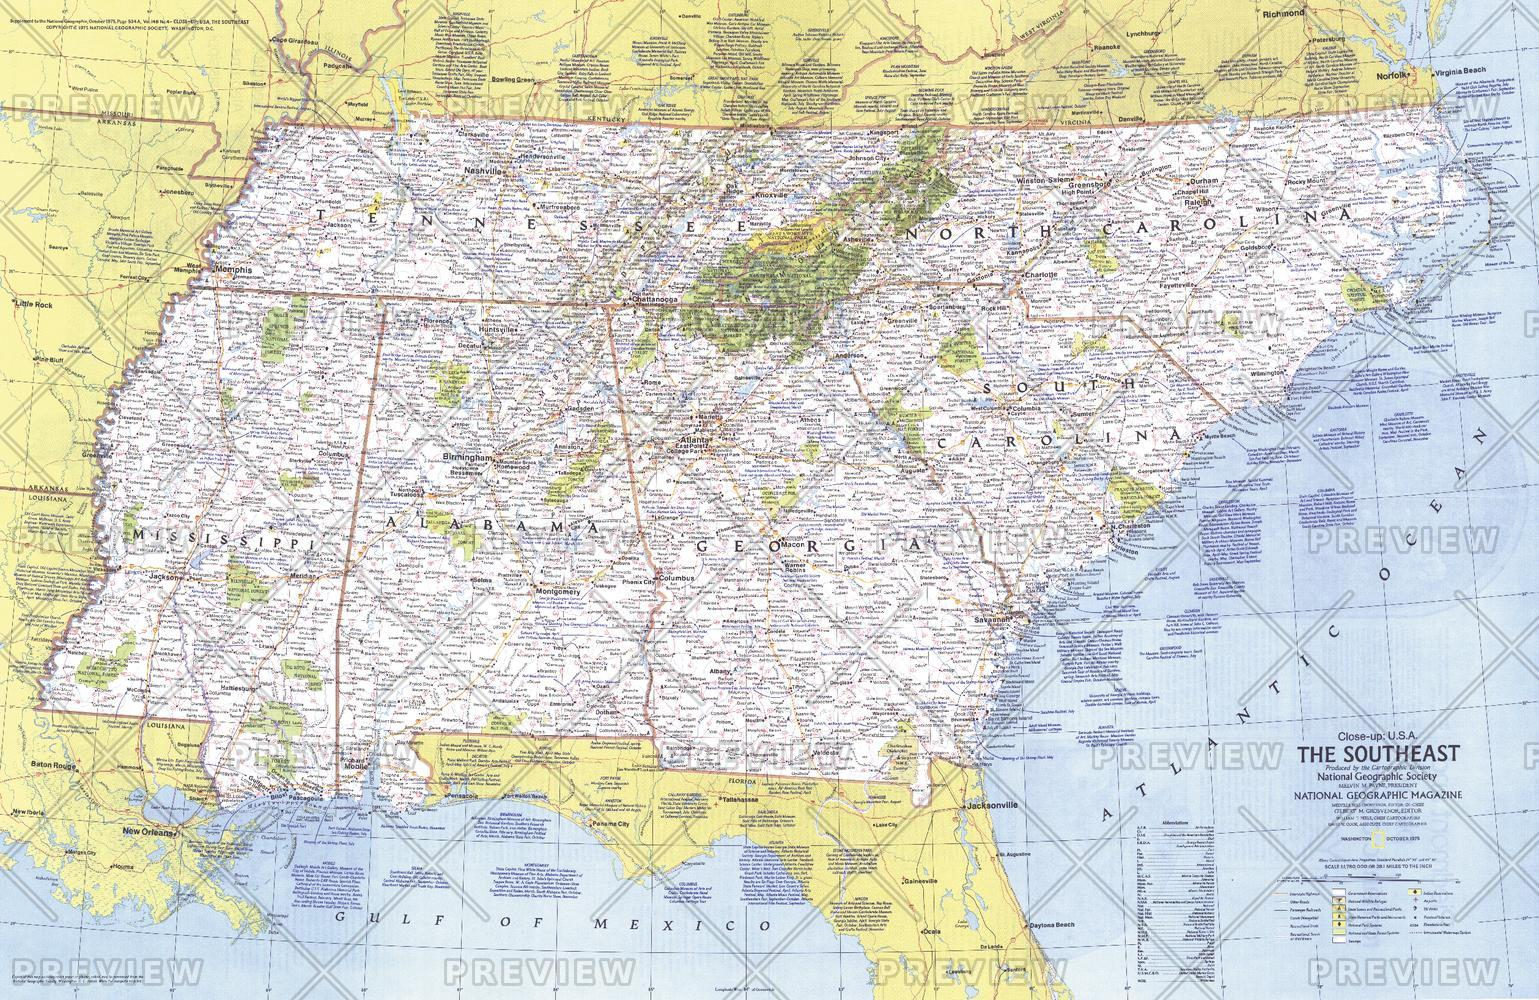 Close-up USA, the Southeast - Published 1975